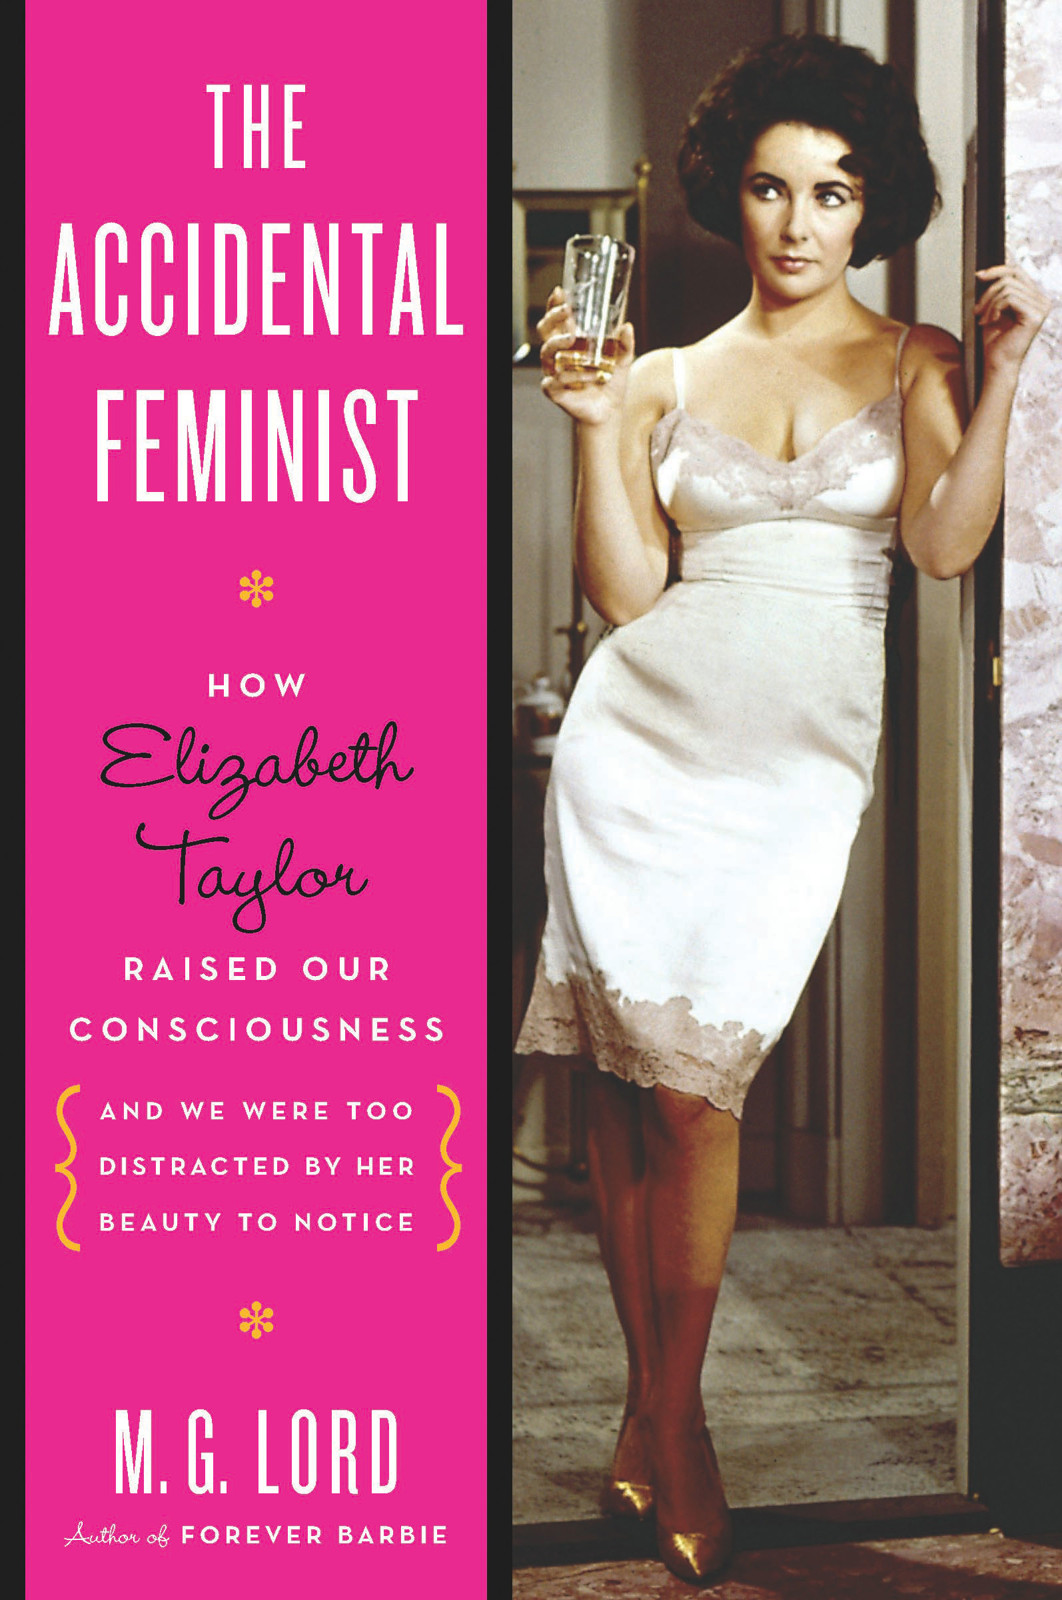 The Accidental Feminist: How Elizabeth Taylor Raised Our Consciousness and We Were Too Distracted By Her Beauty to Notice free download